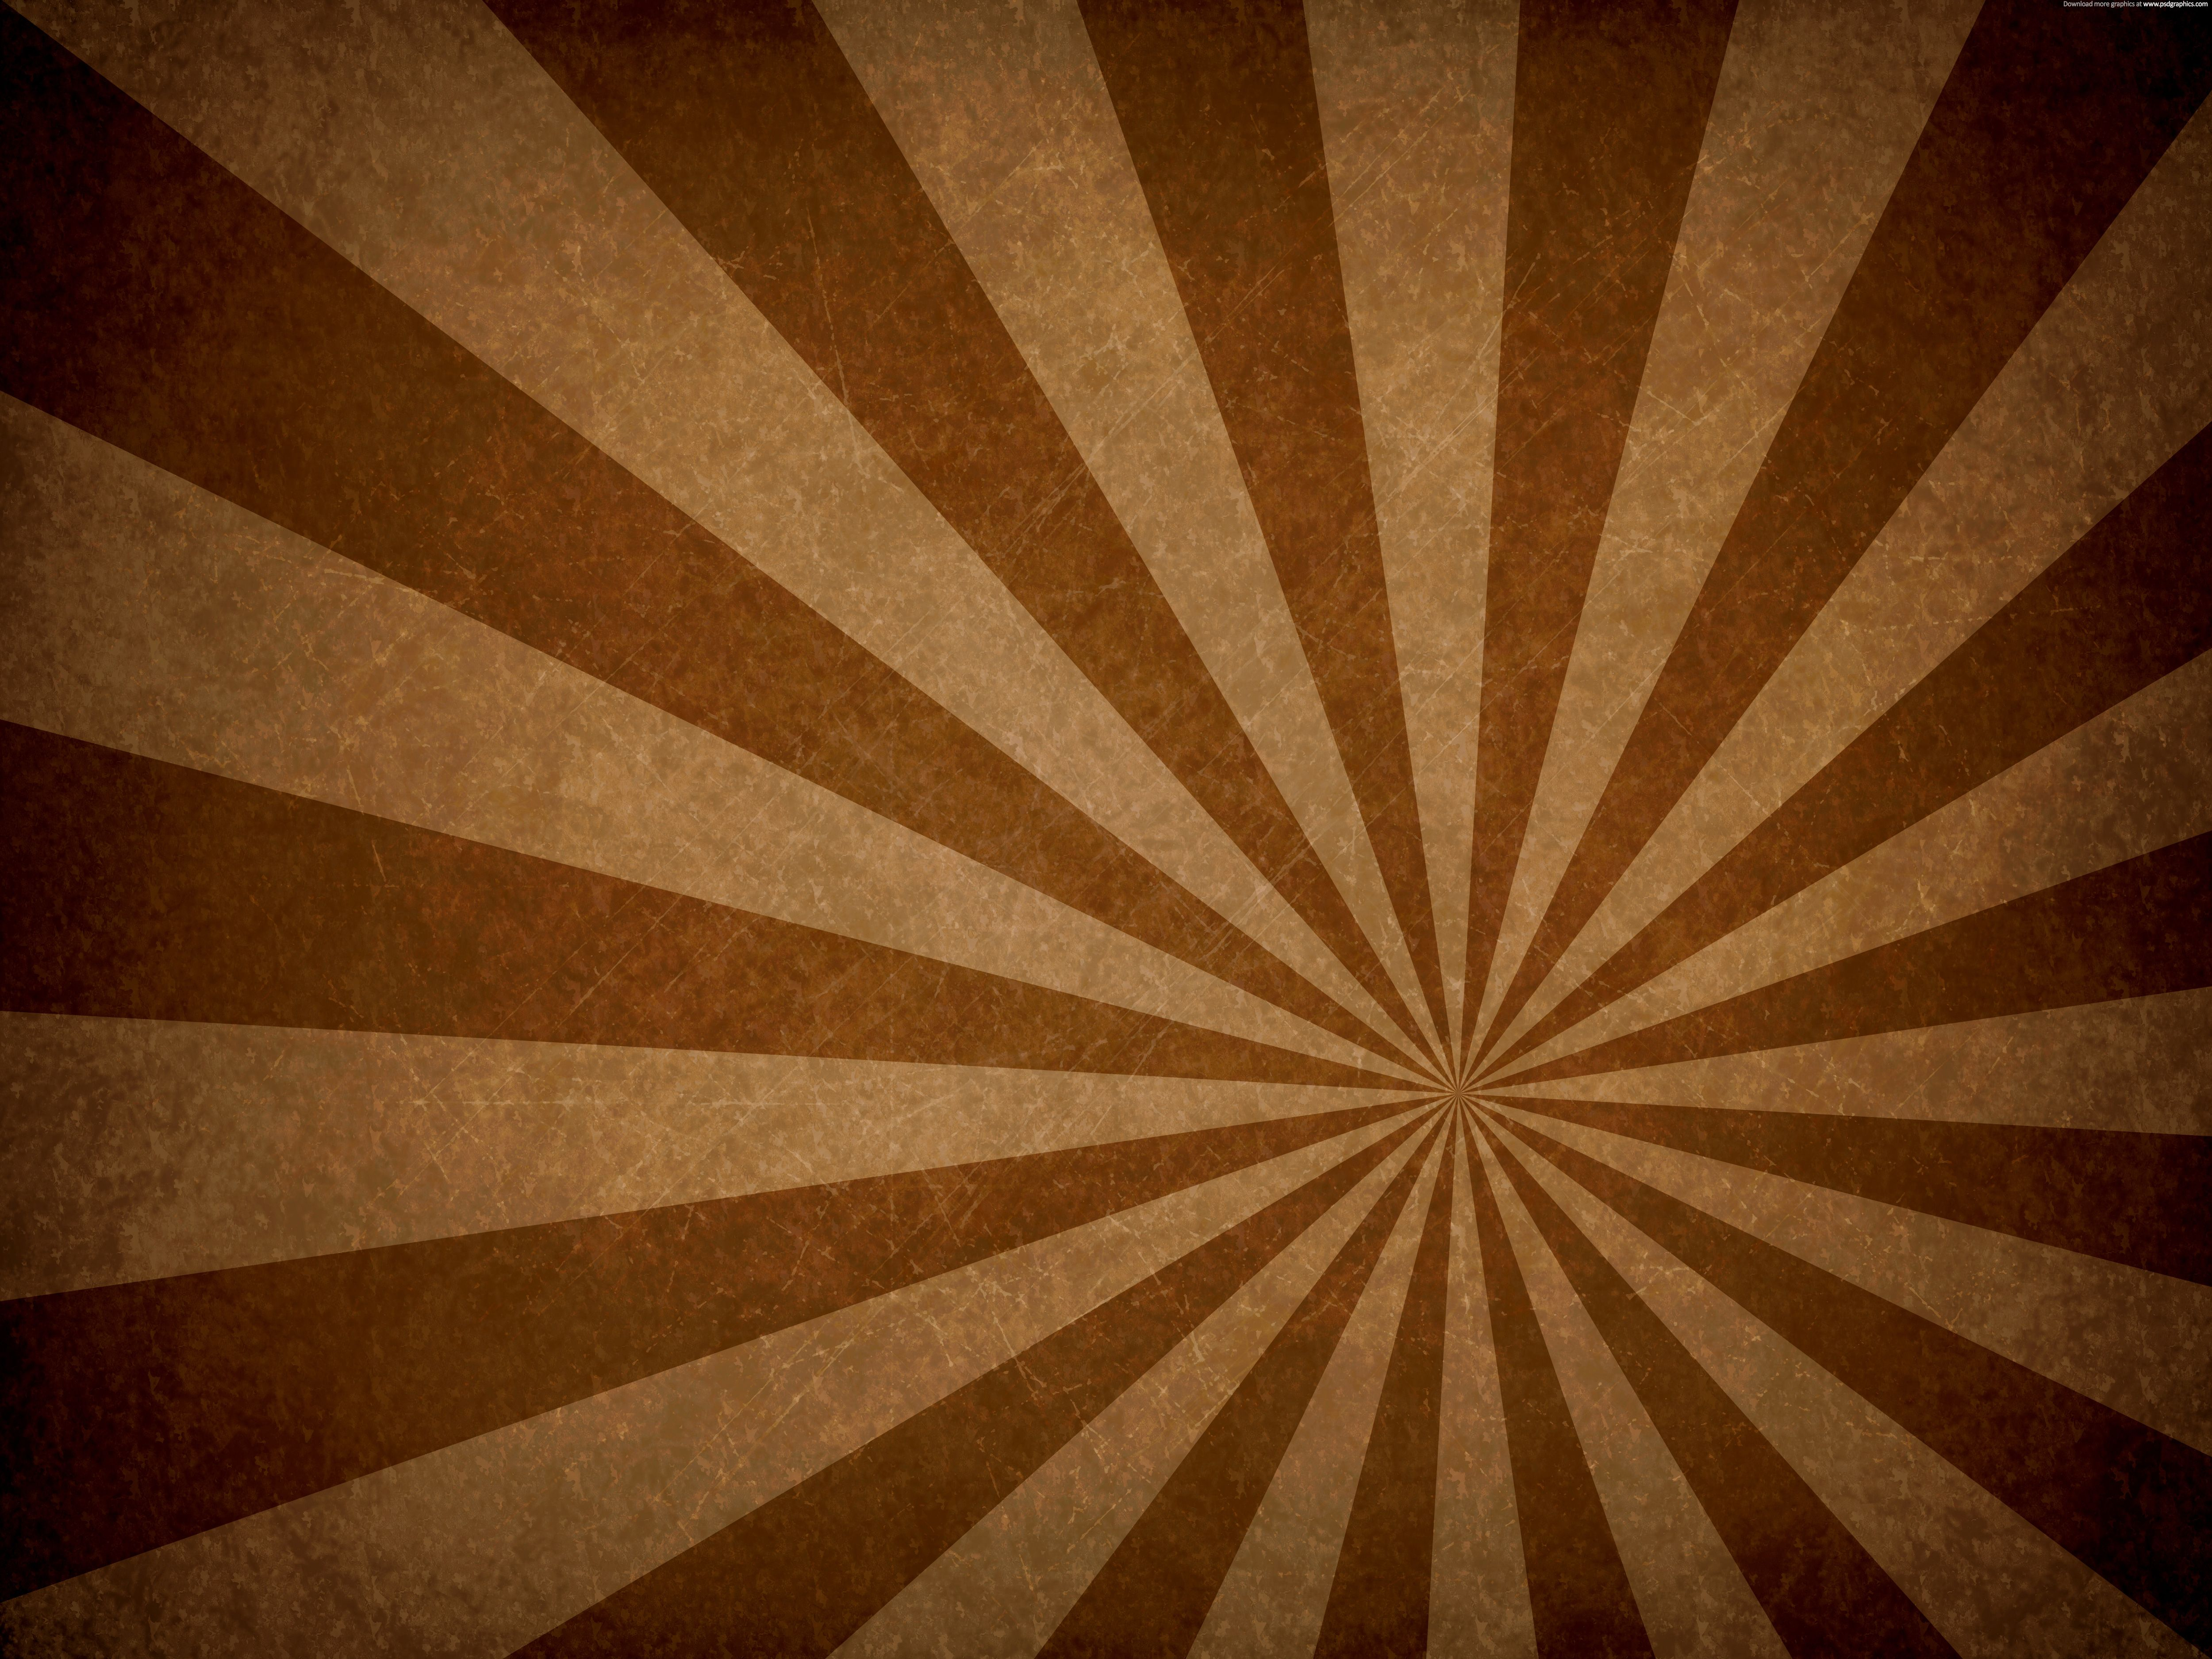 Retro Vintage Backgrounds Vintage Circus Brown Wallpaper